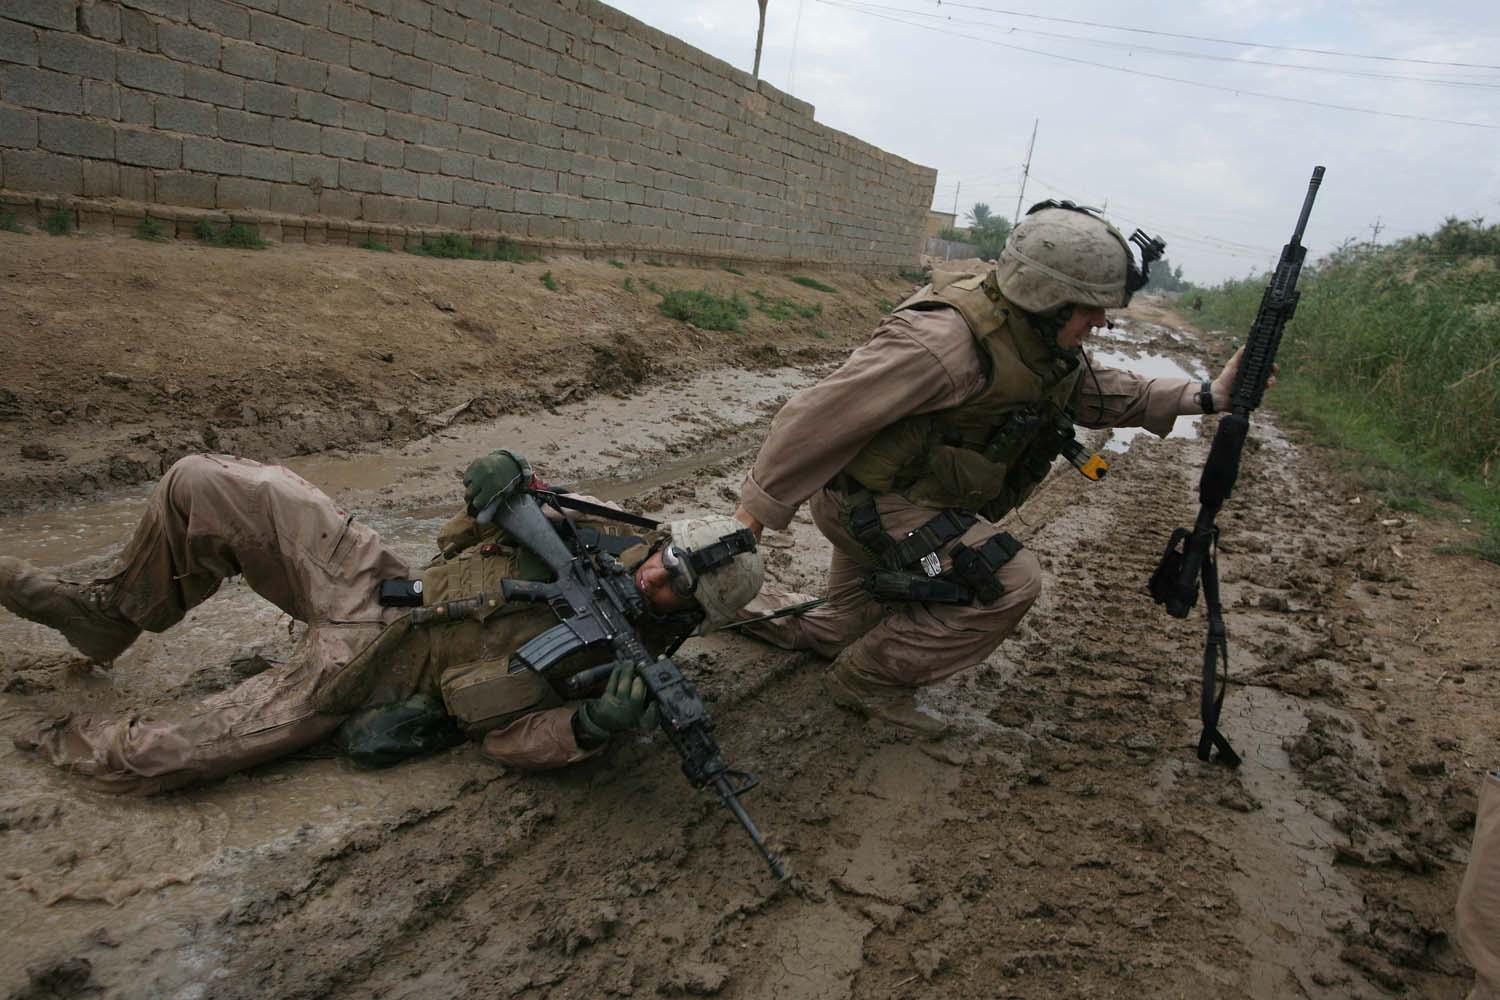 Sgt Jesse E. Leach drags Lance CPL Juan Valdez of the for 4th mobile assault platoon Weapons company 2nd battalion 8th Marines to safety moments after he was shot by a sniper during a joined patrol with the Iraqi Army in Karmah, Anbar Province, Iraq. Valdez was shot through the arm and the right side but survuved. Oct. 31, 2006.                                                              (WPP Honorable mention, Spot News Stories, 2006)